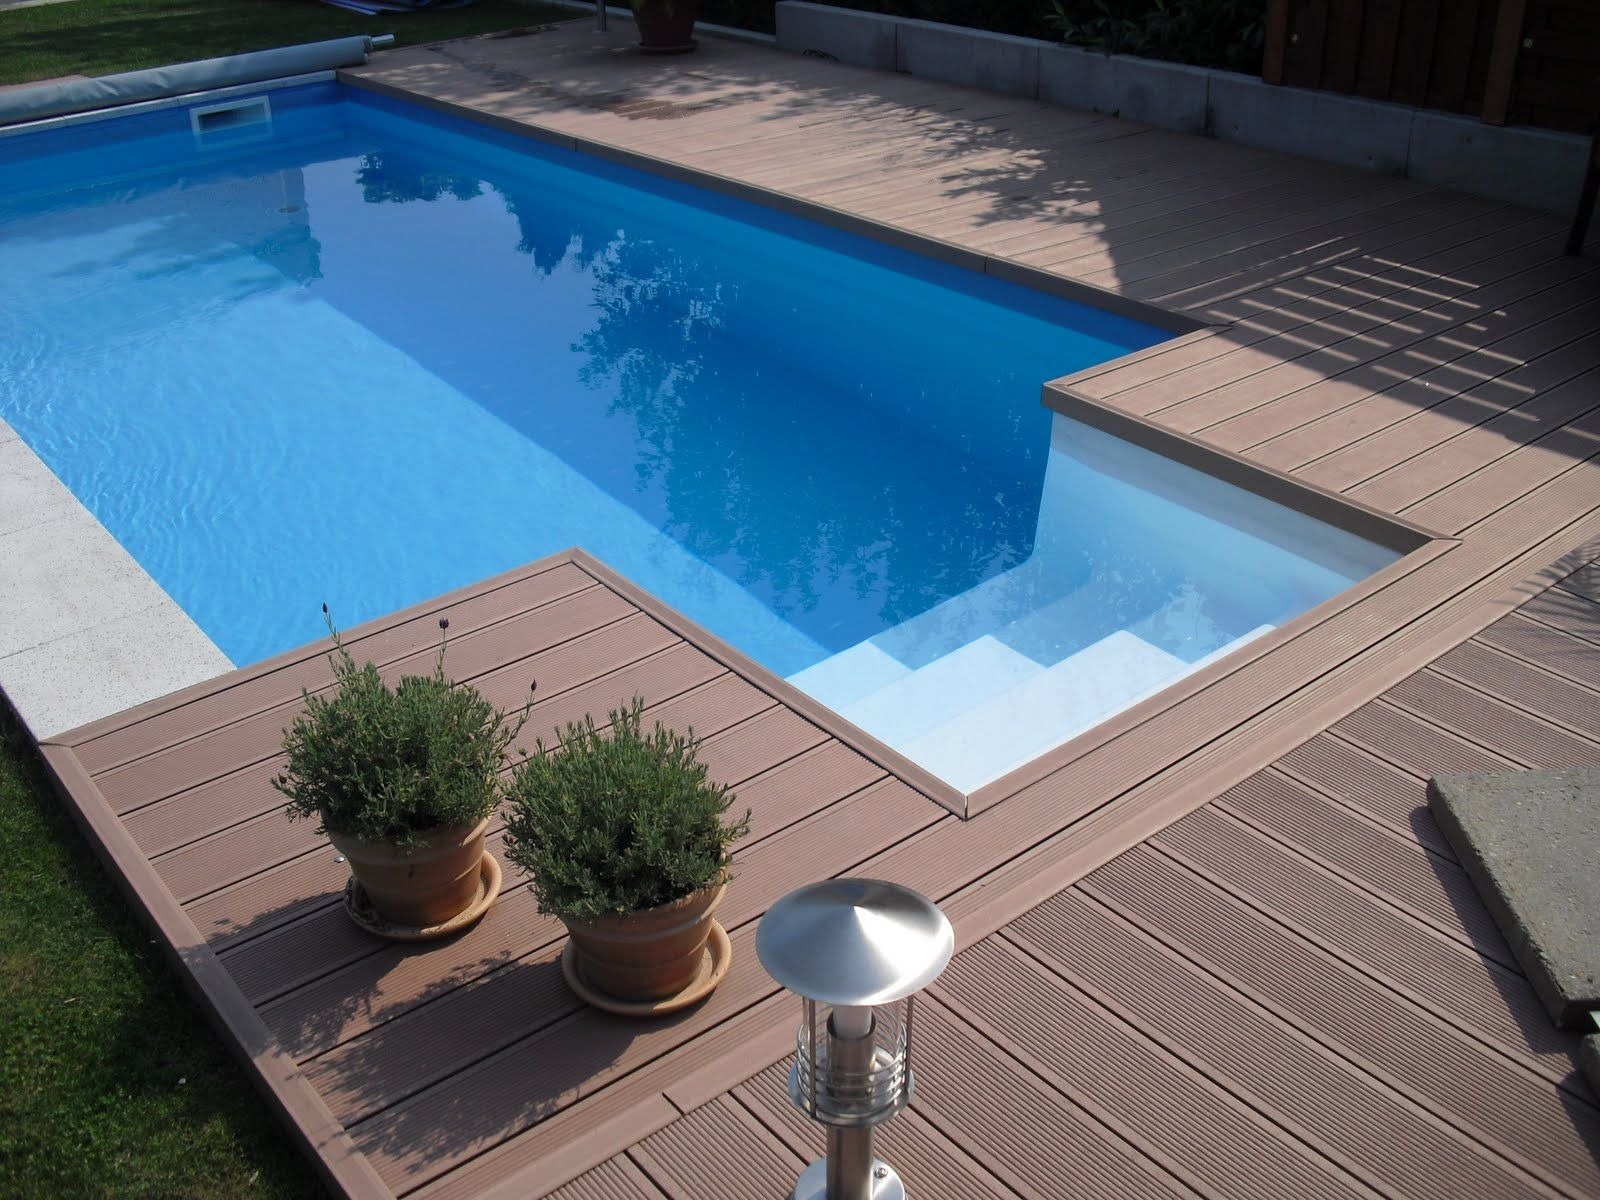 Pool selbstbau poolvergn gen f r jeden for Gartenpool holz